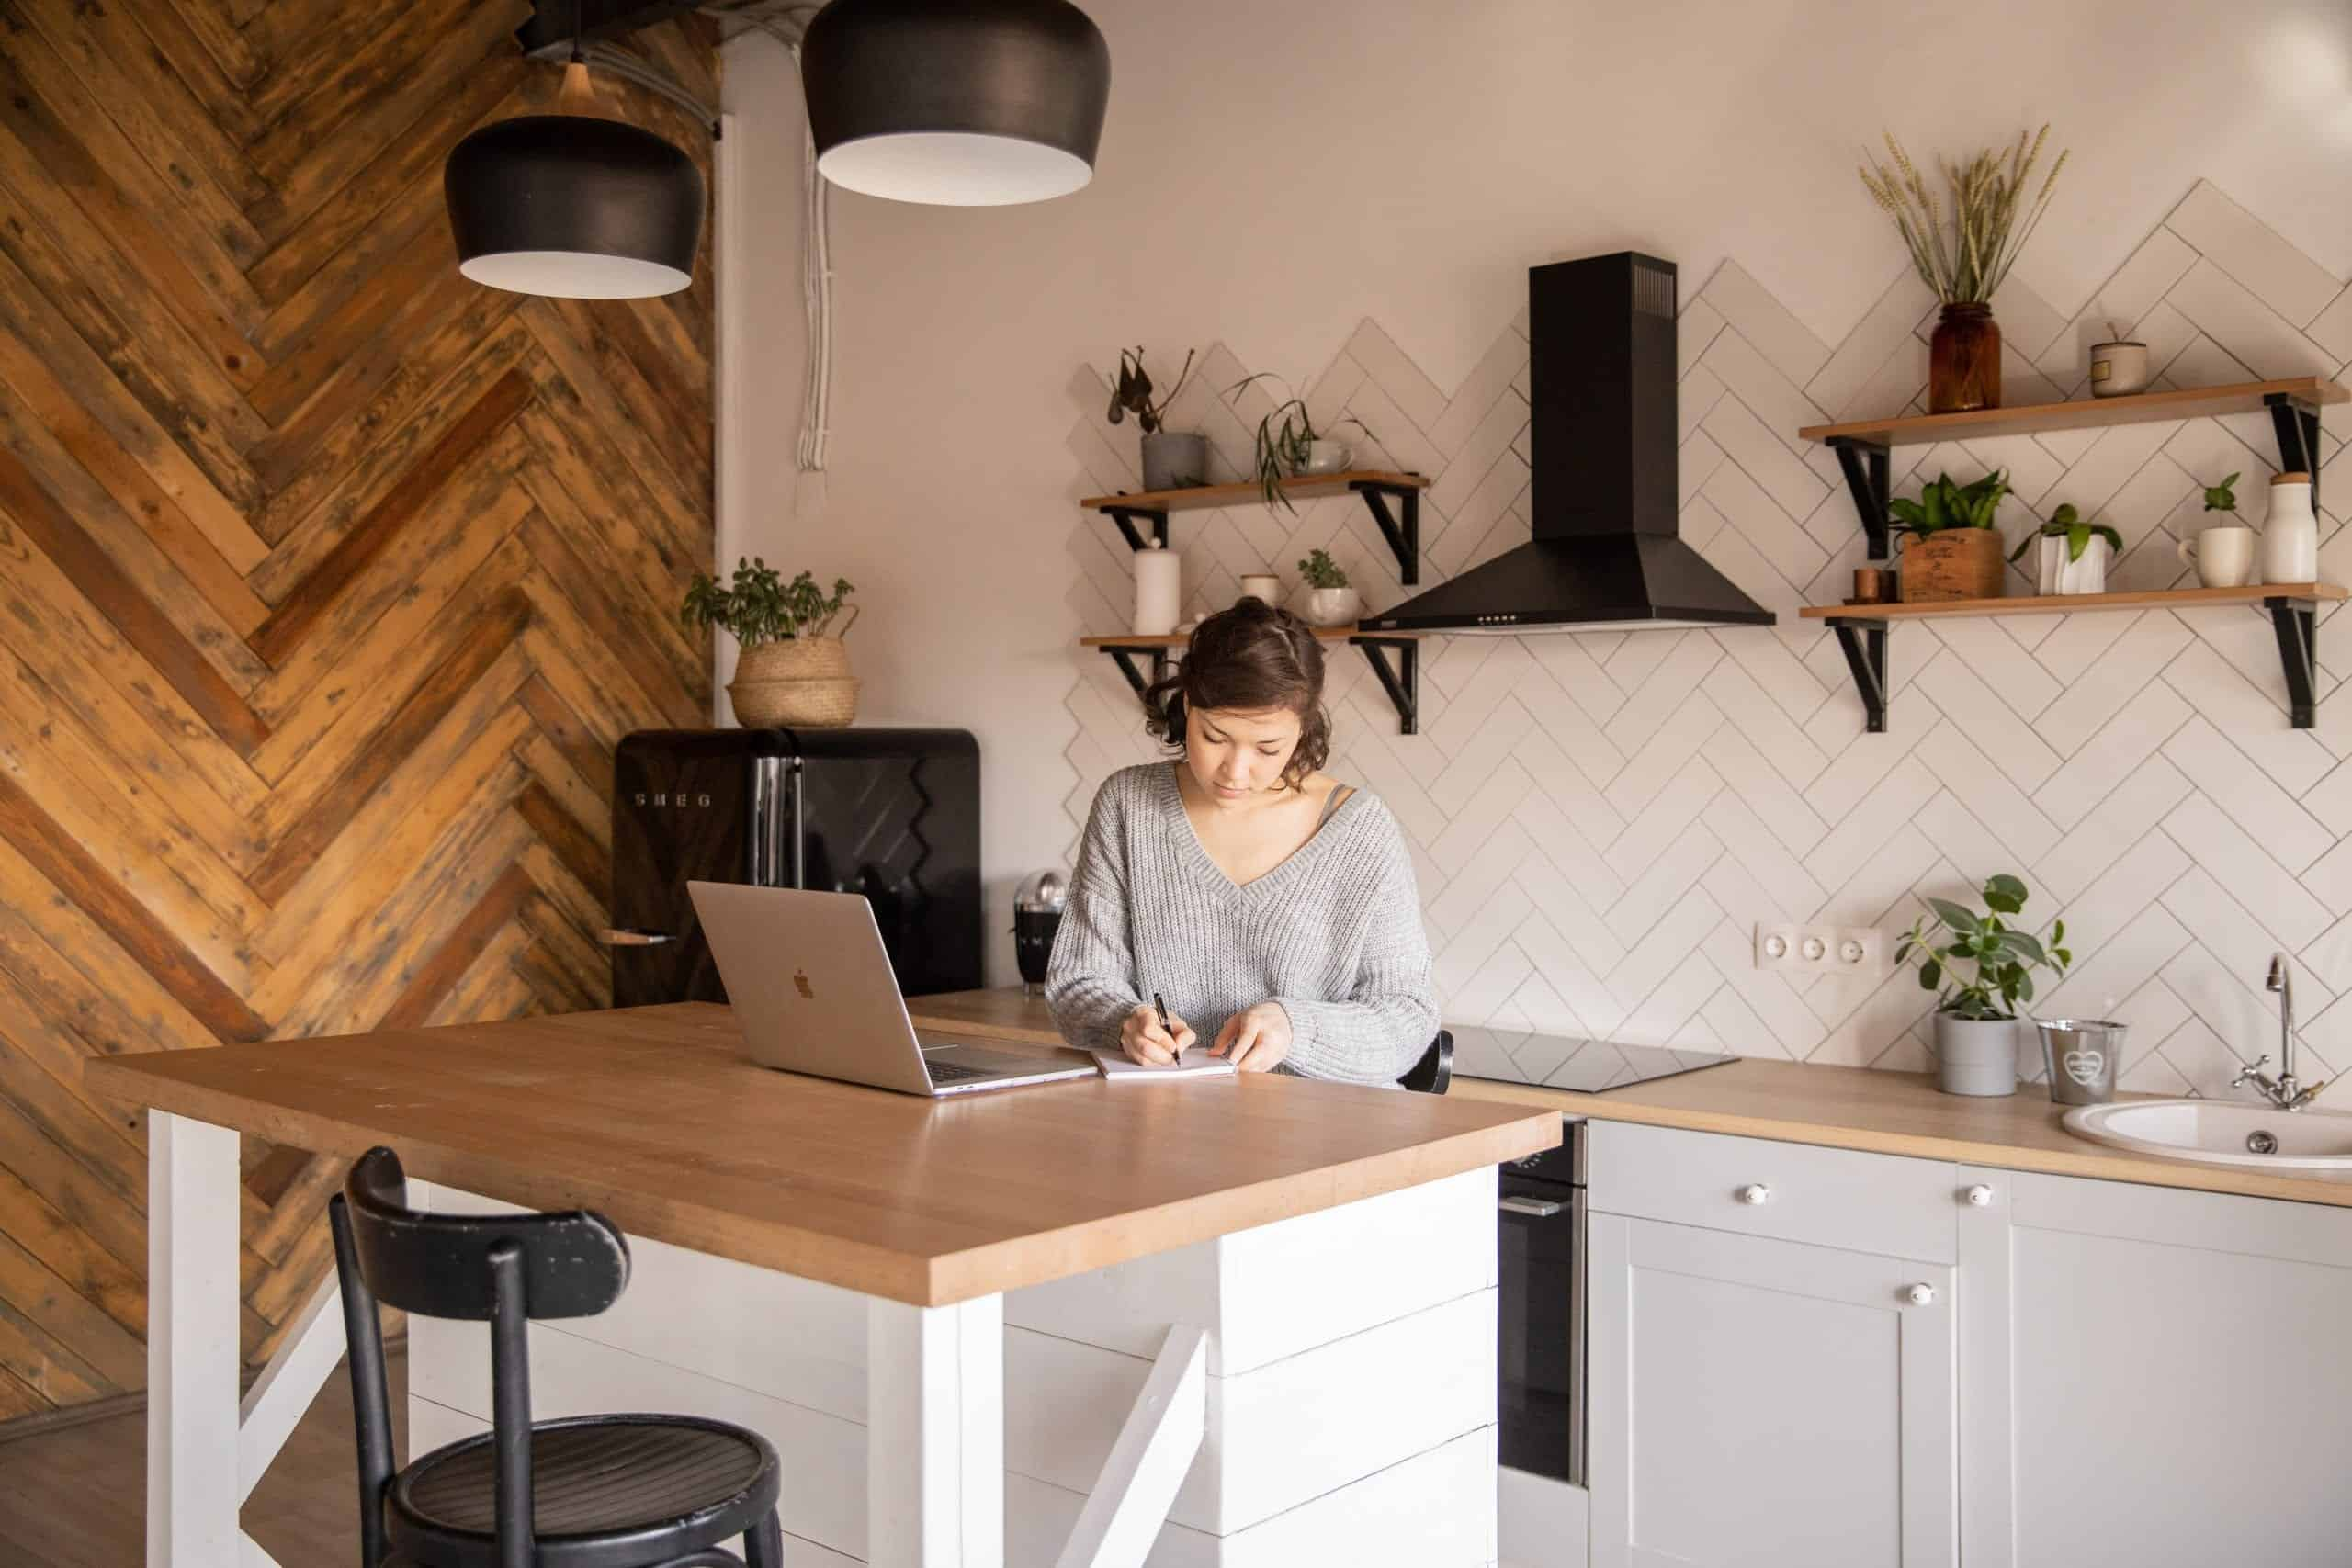 picture of woman sitting in her kitchen working with her computer open and open shelving with plants and jars behind her.